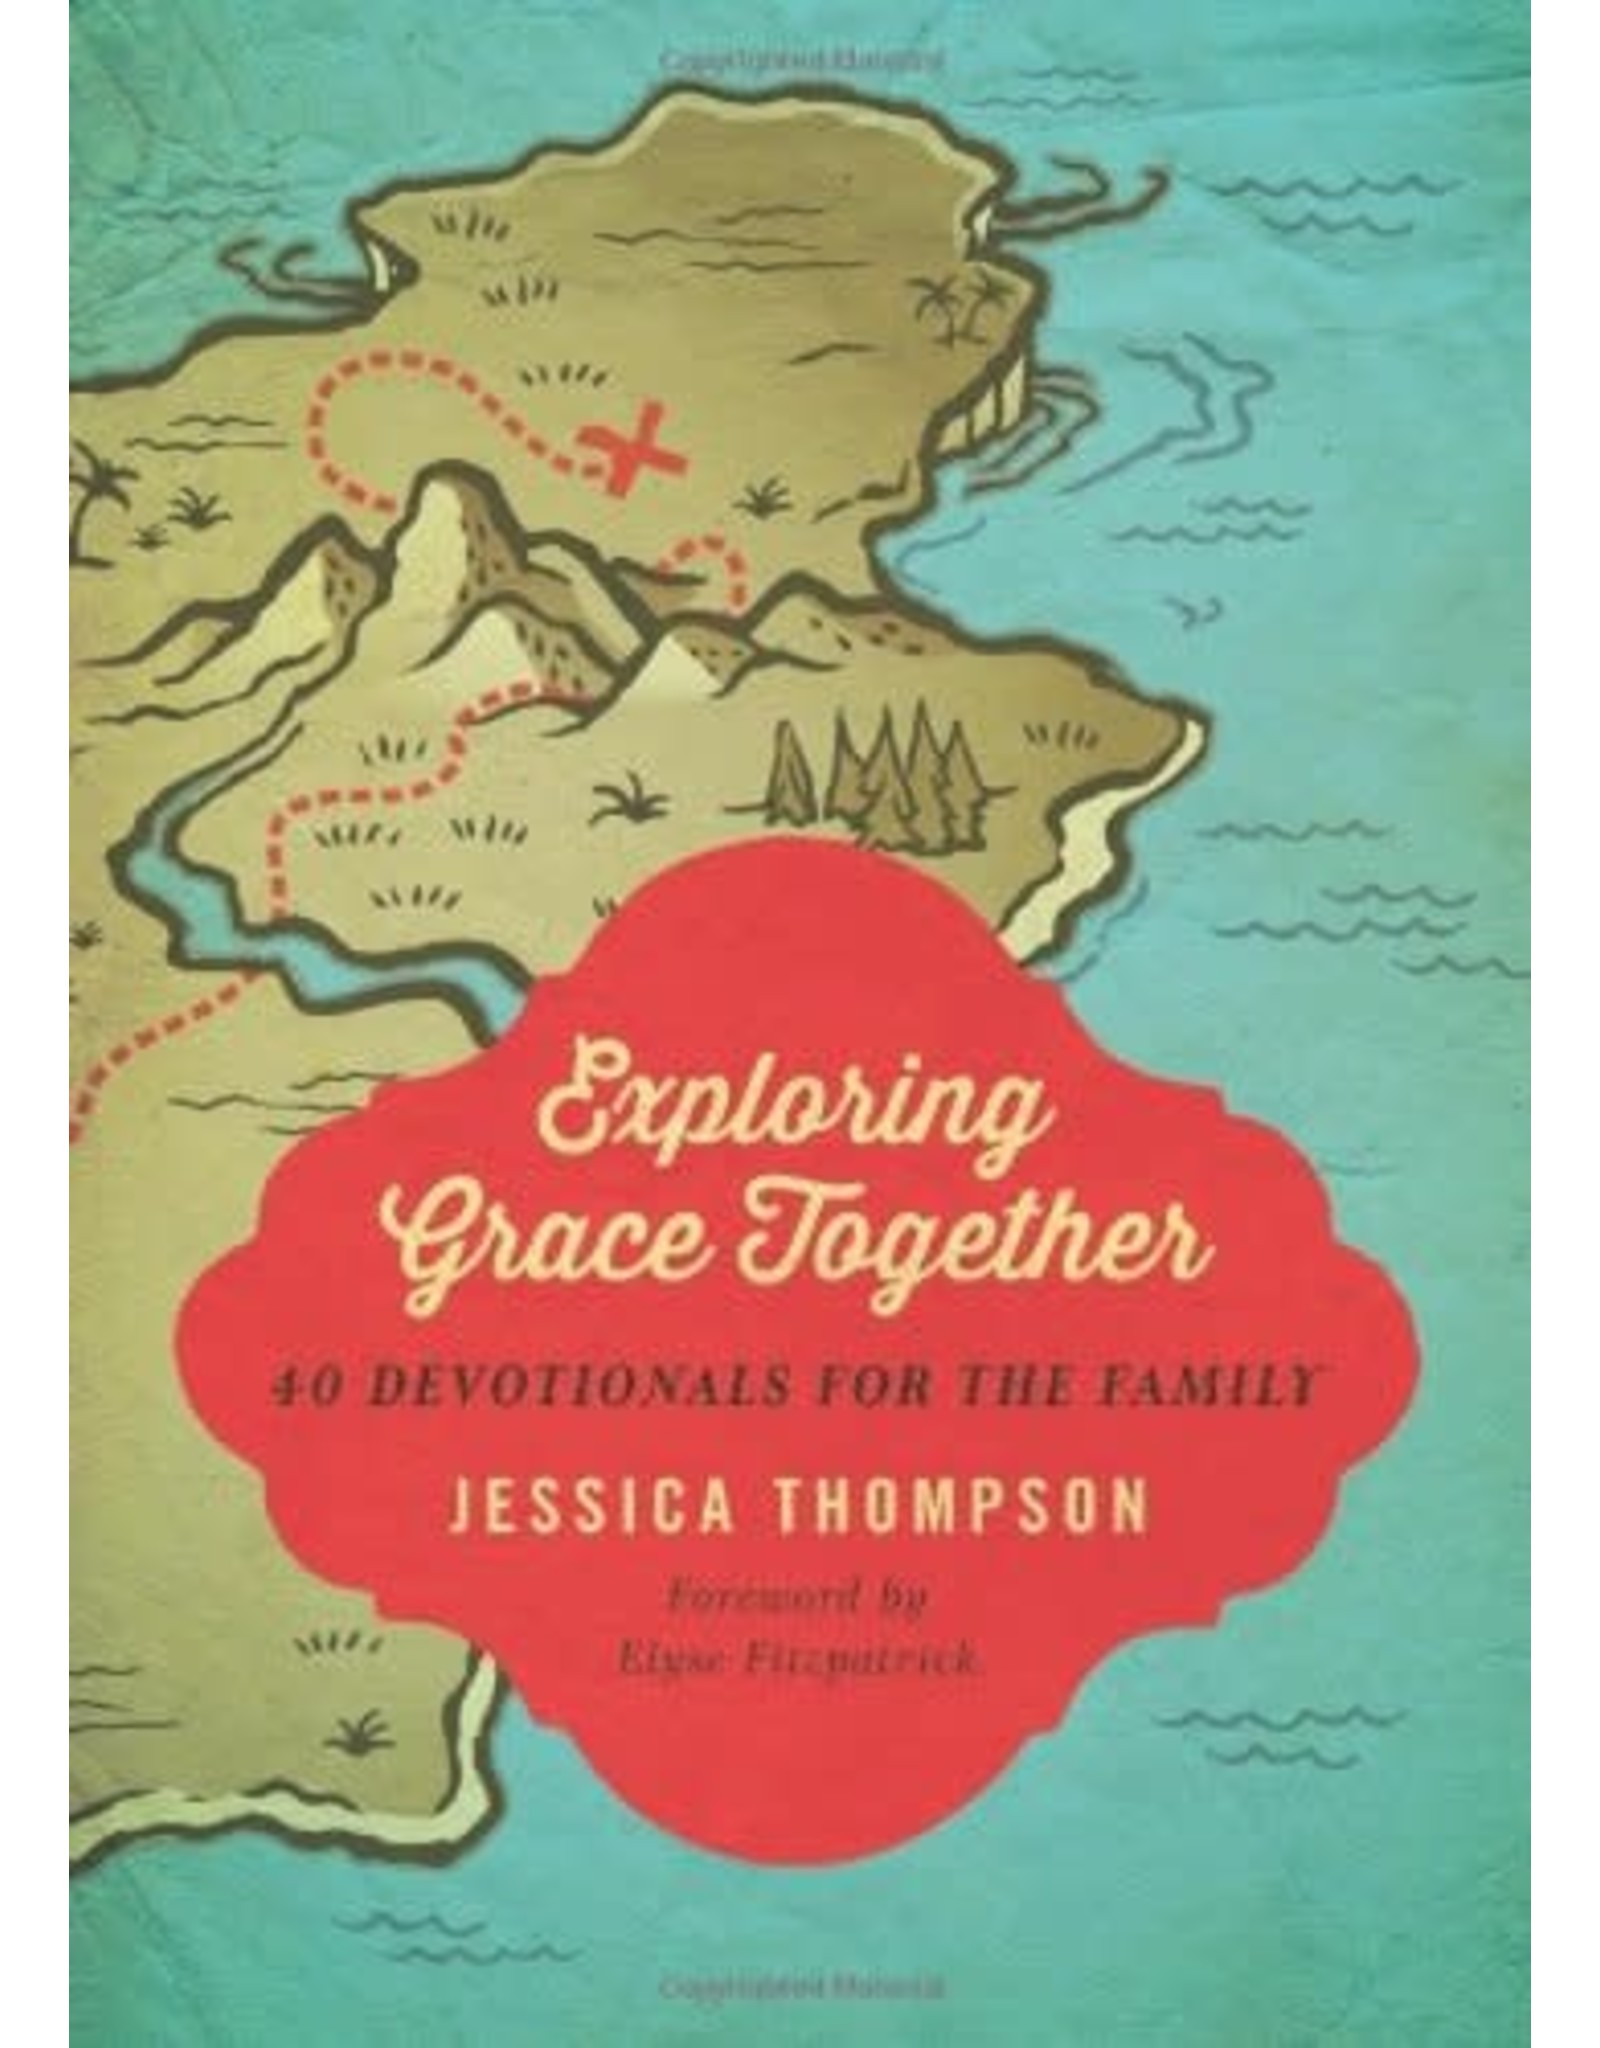 Crossway / Good News Exploring Grace Together: 40 Devotionals for the Family